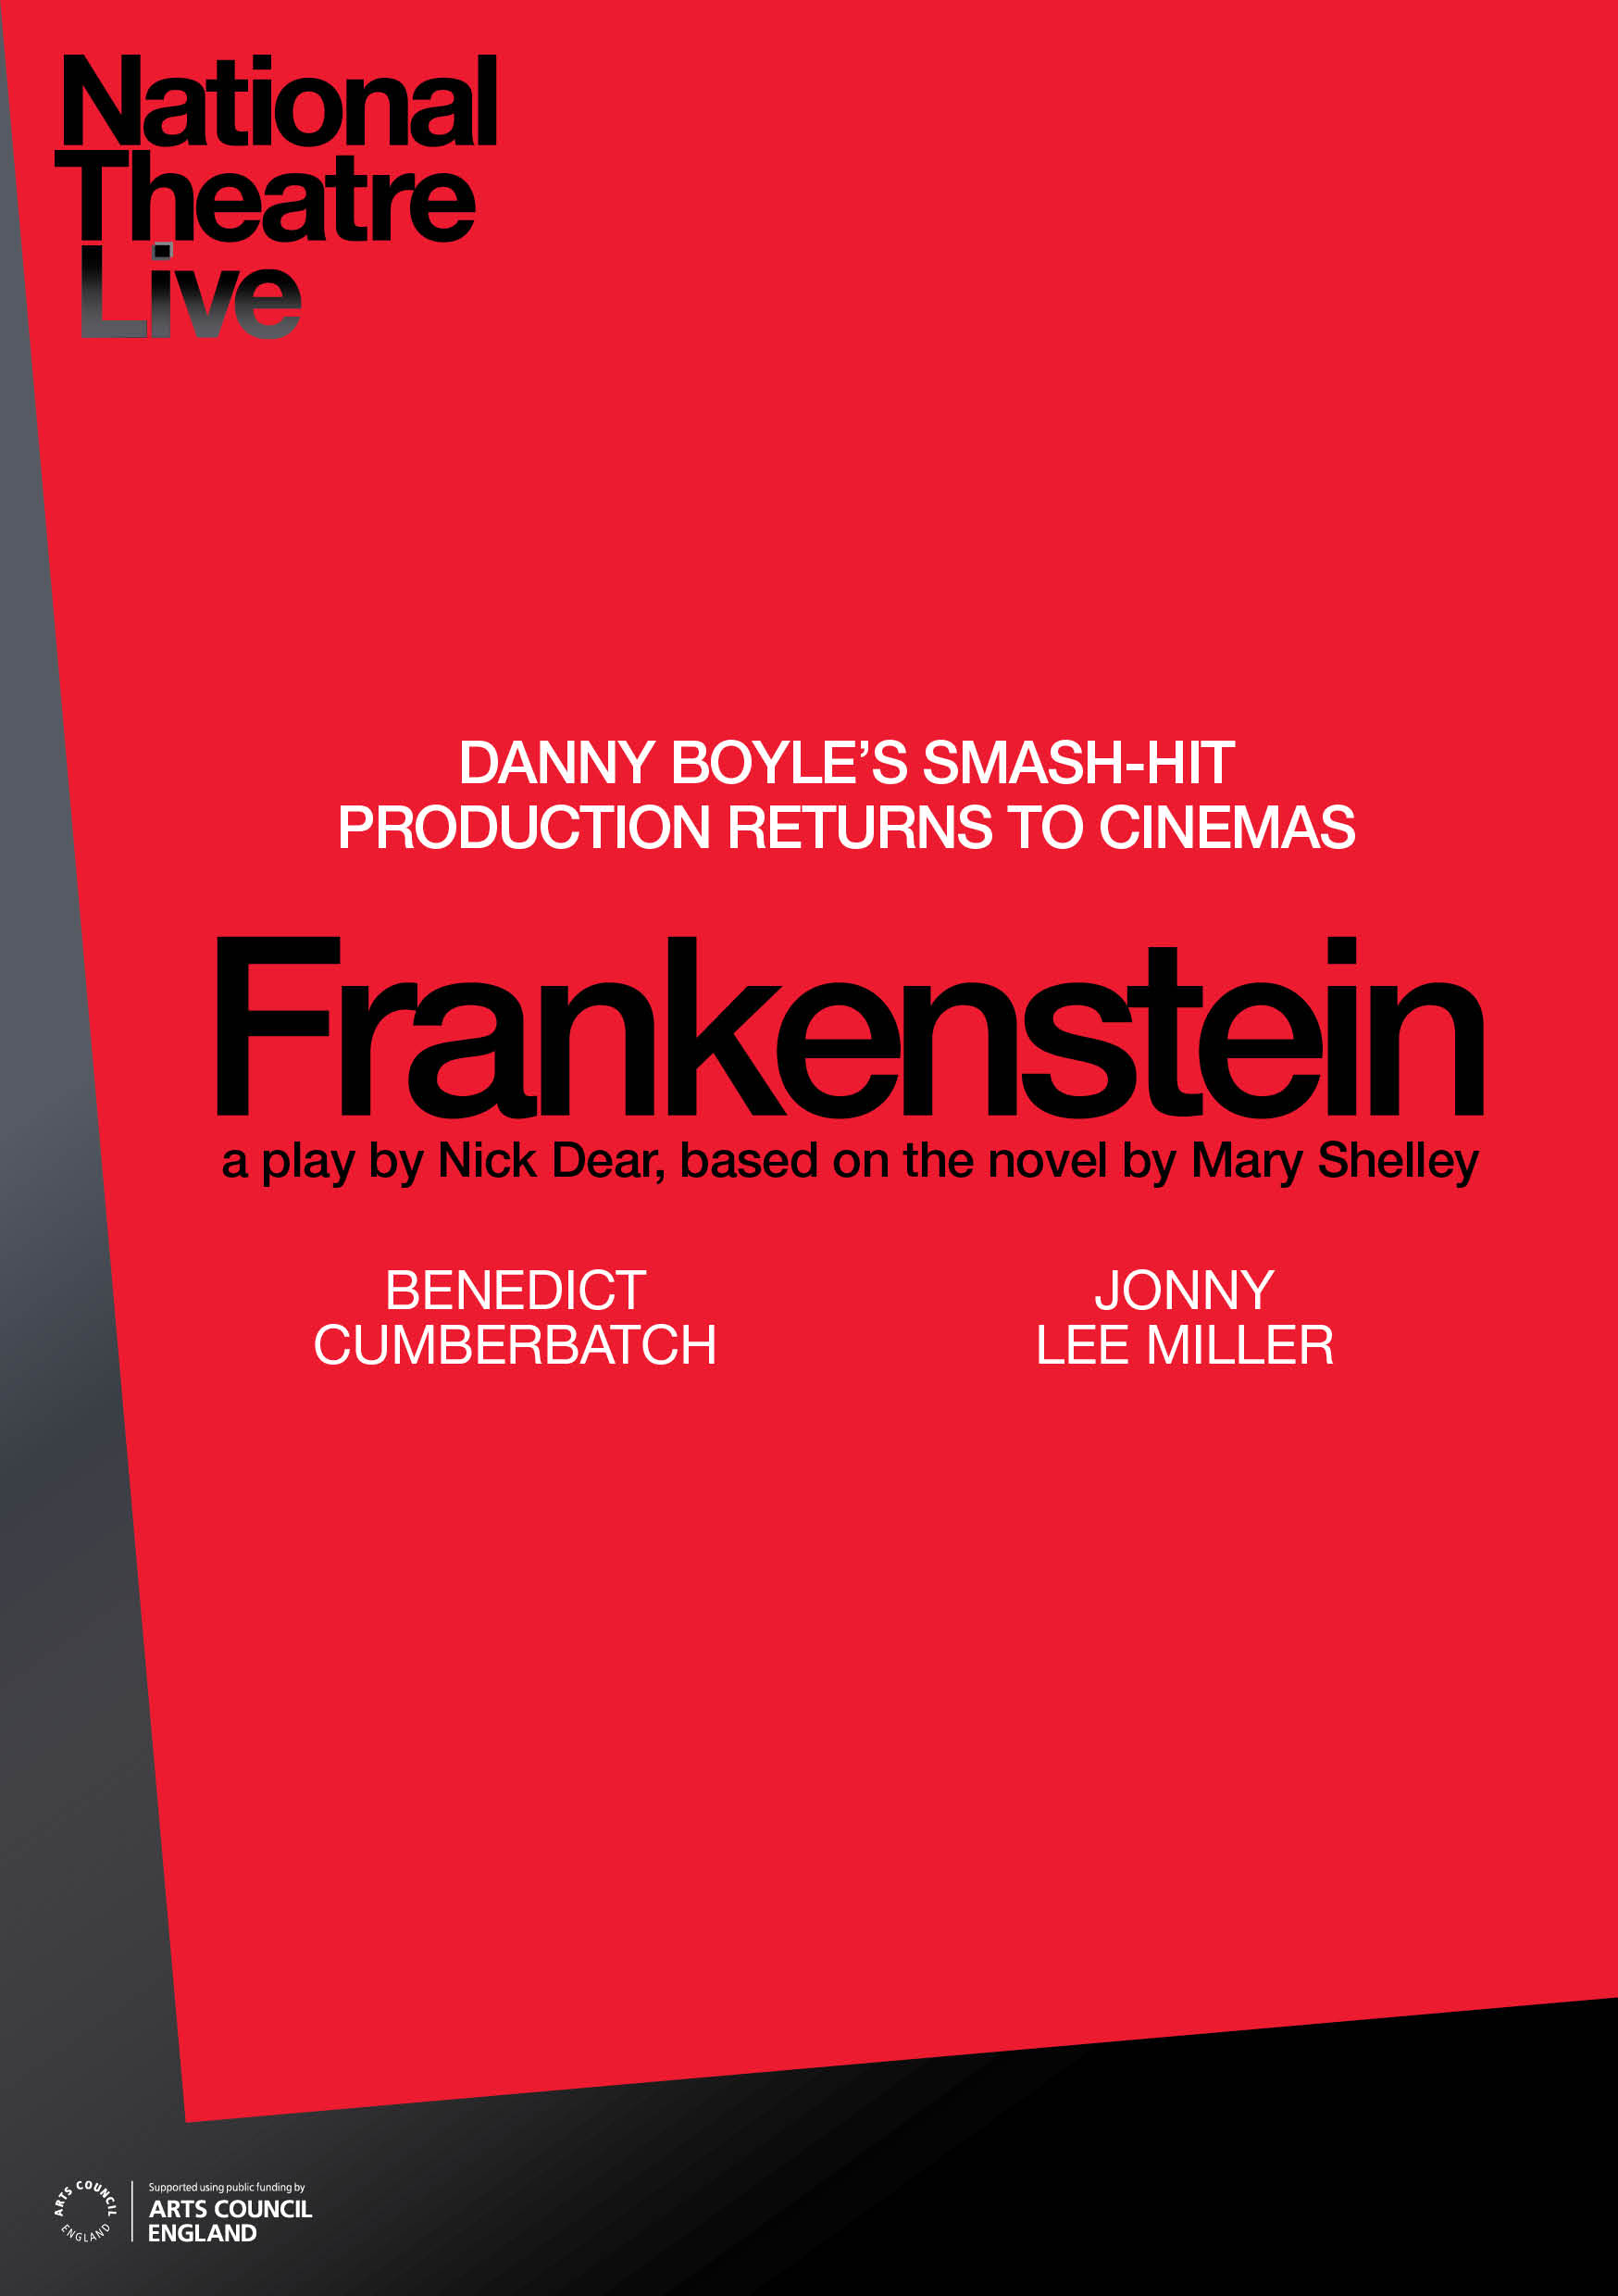 NTLive_Frankenstein_DigitalA5Portrait_130614